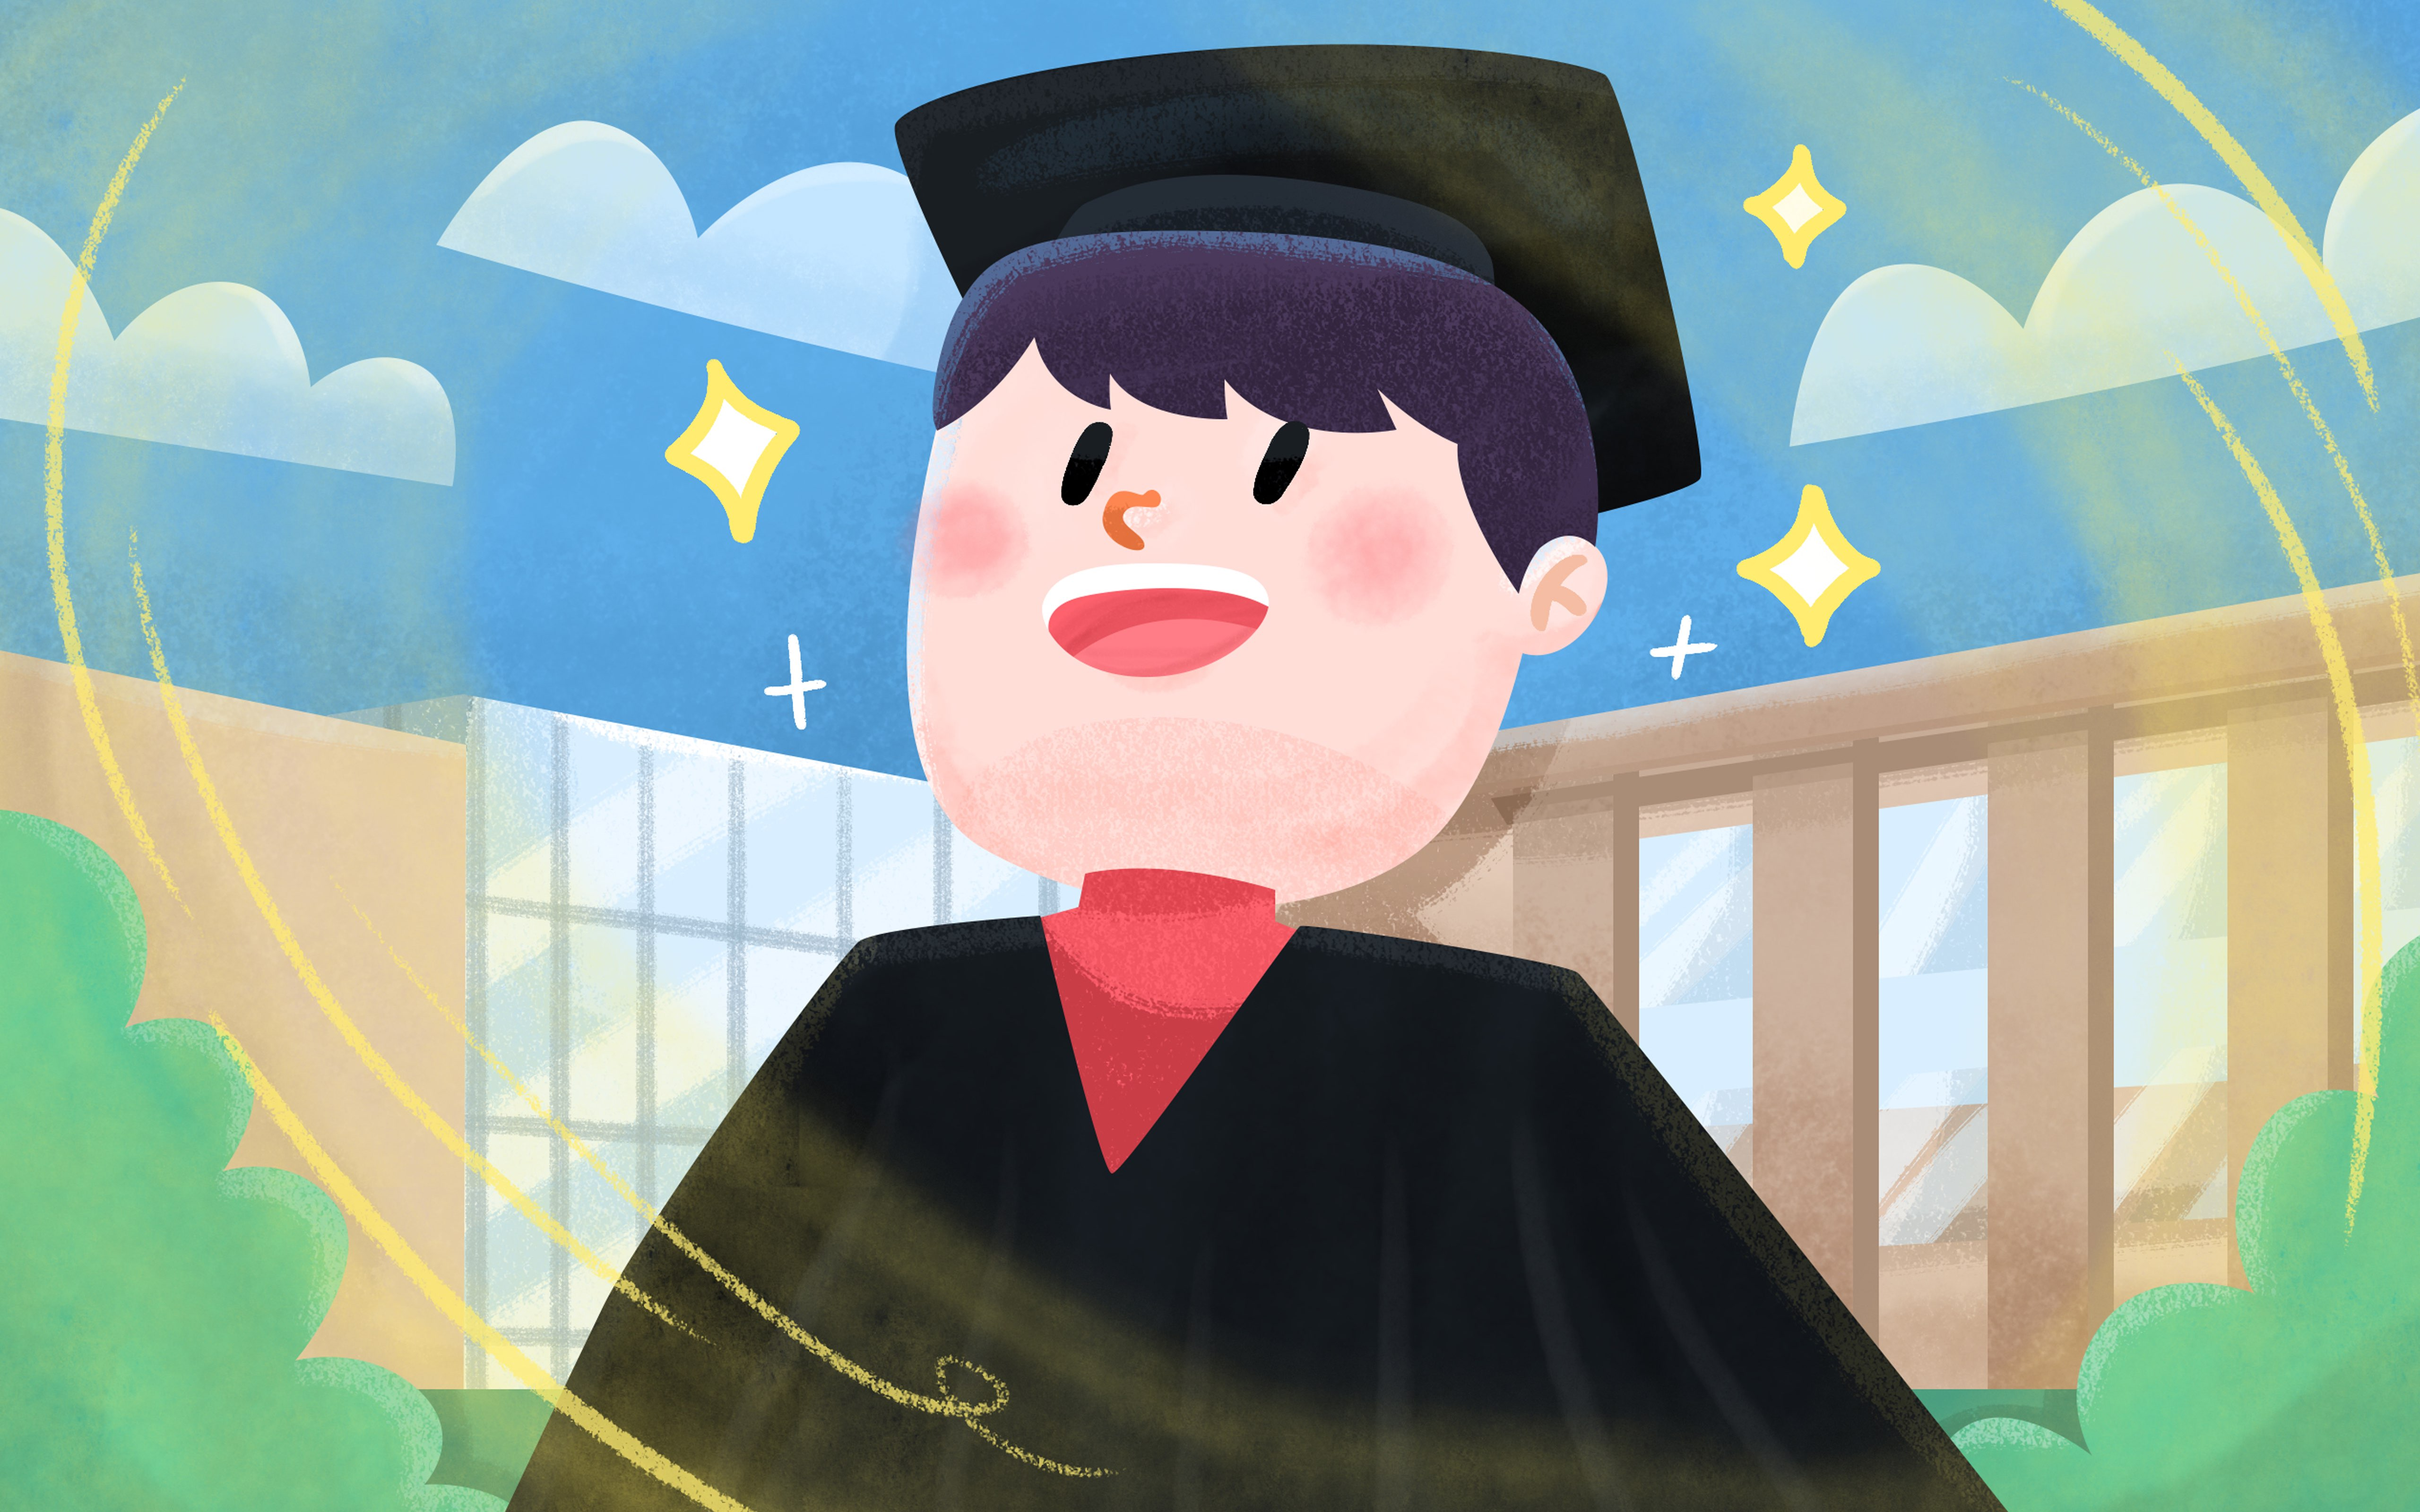 Japanese scholarships for clipart students clipart images.